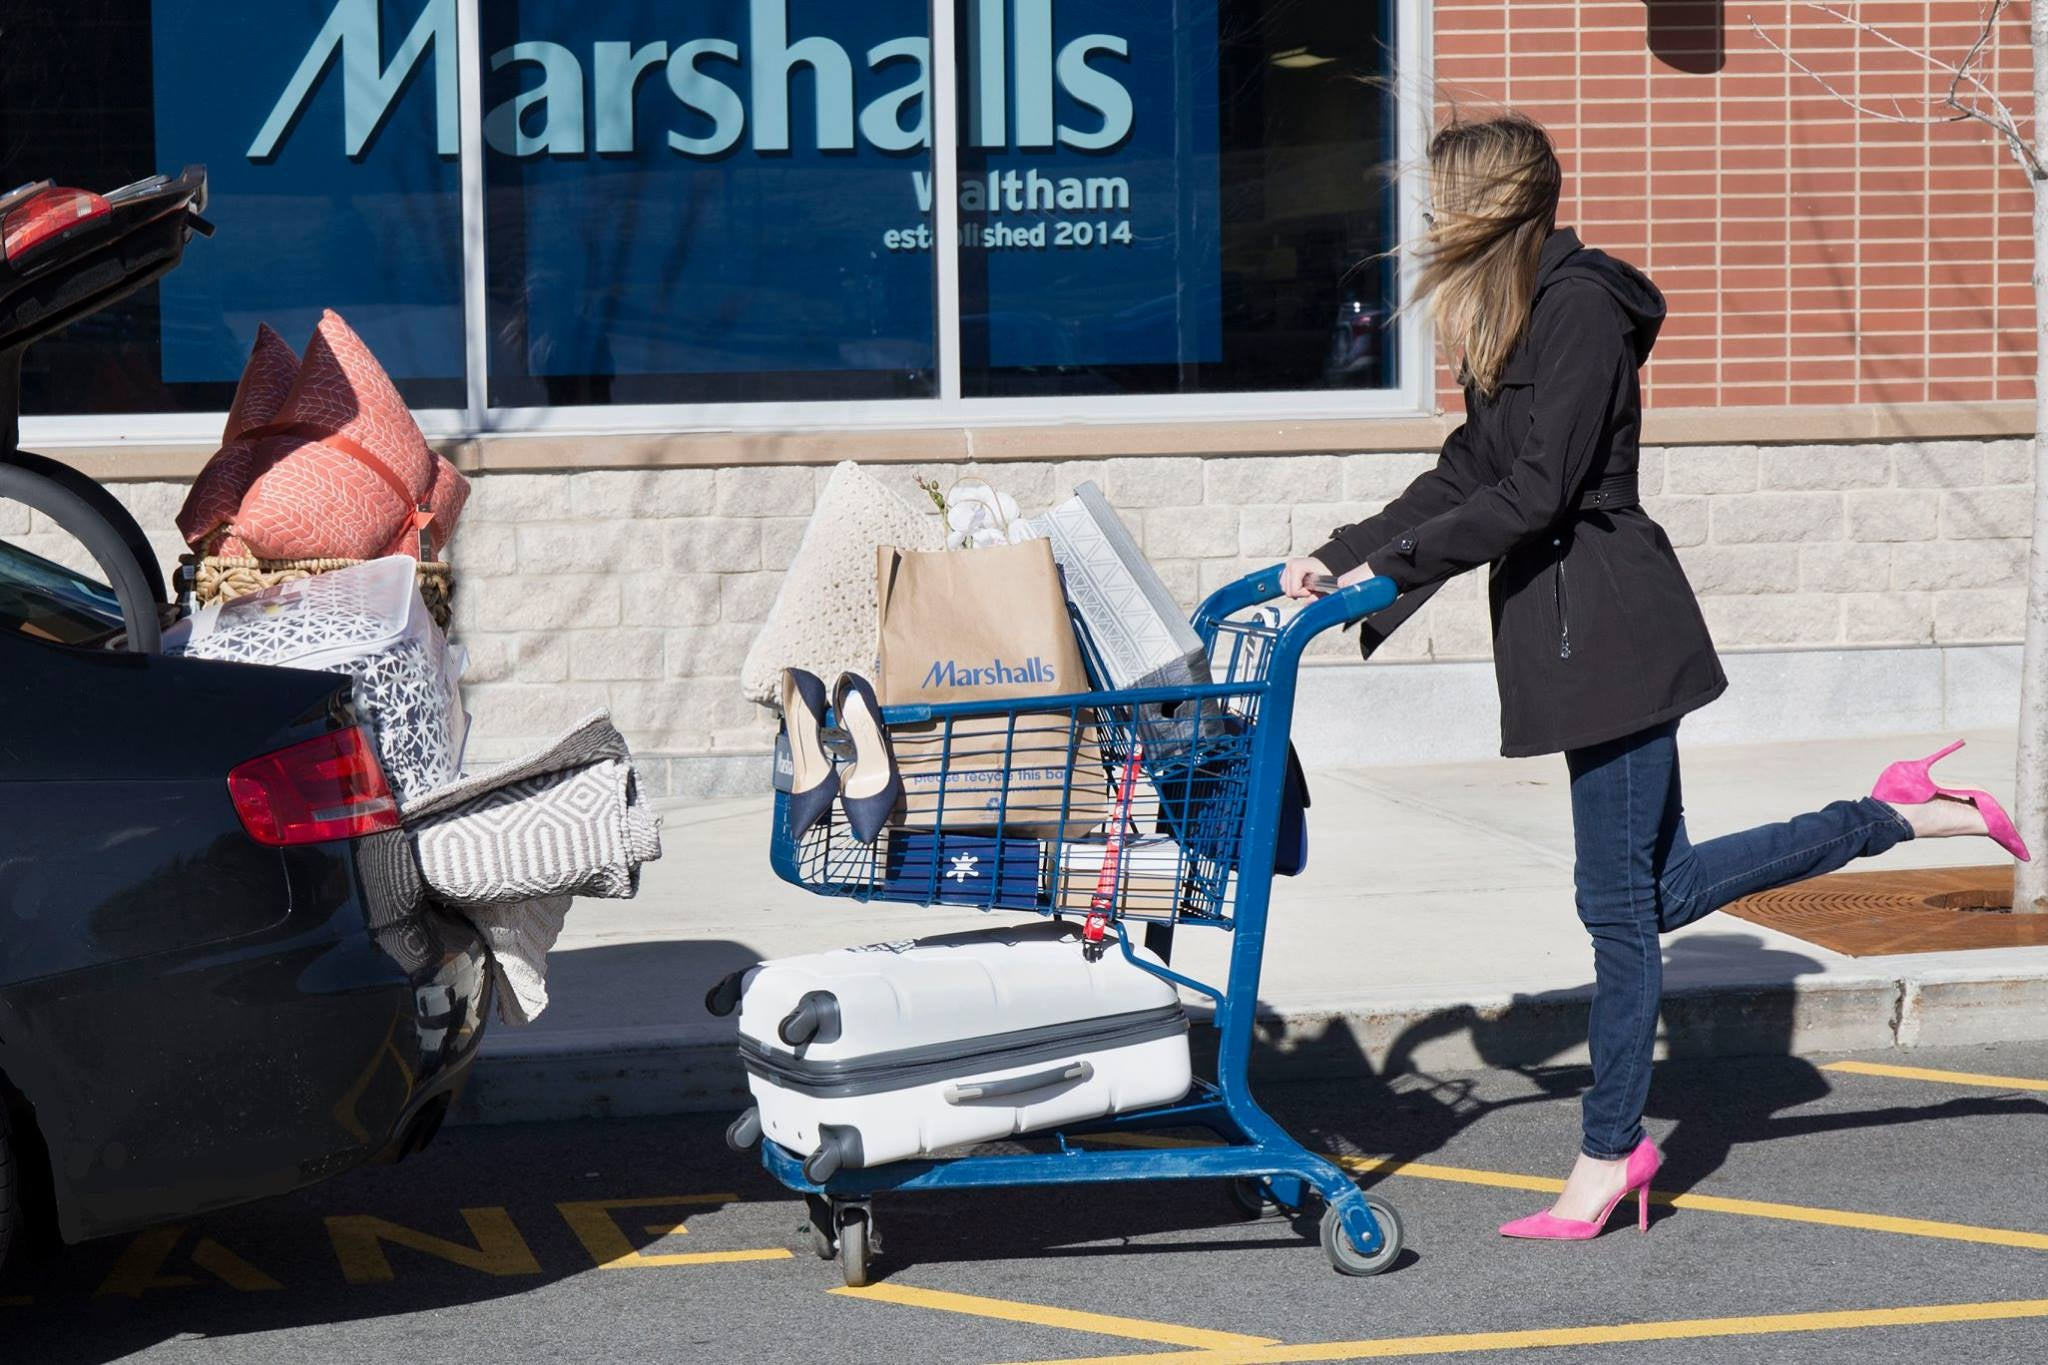 A woman with a full shopping cart in front of a Marshalls store.